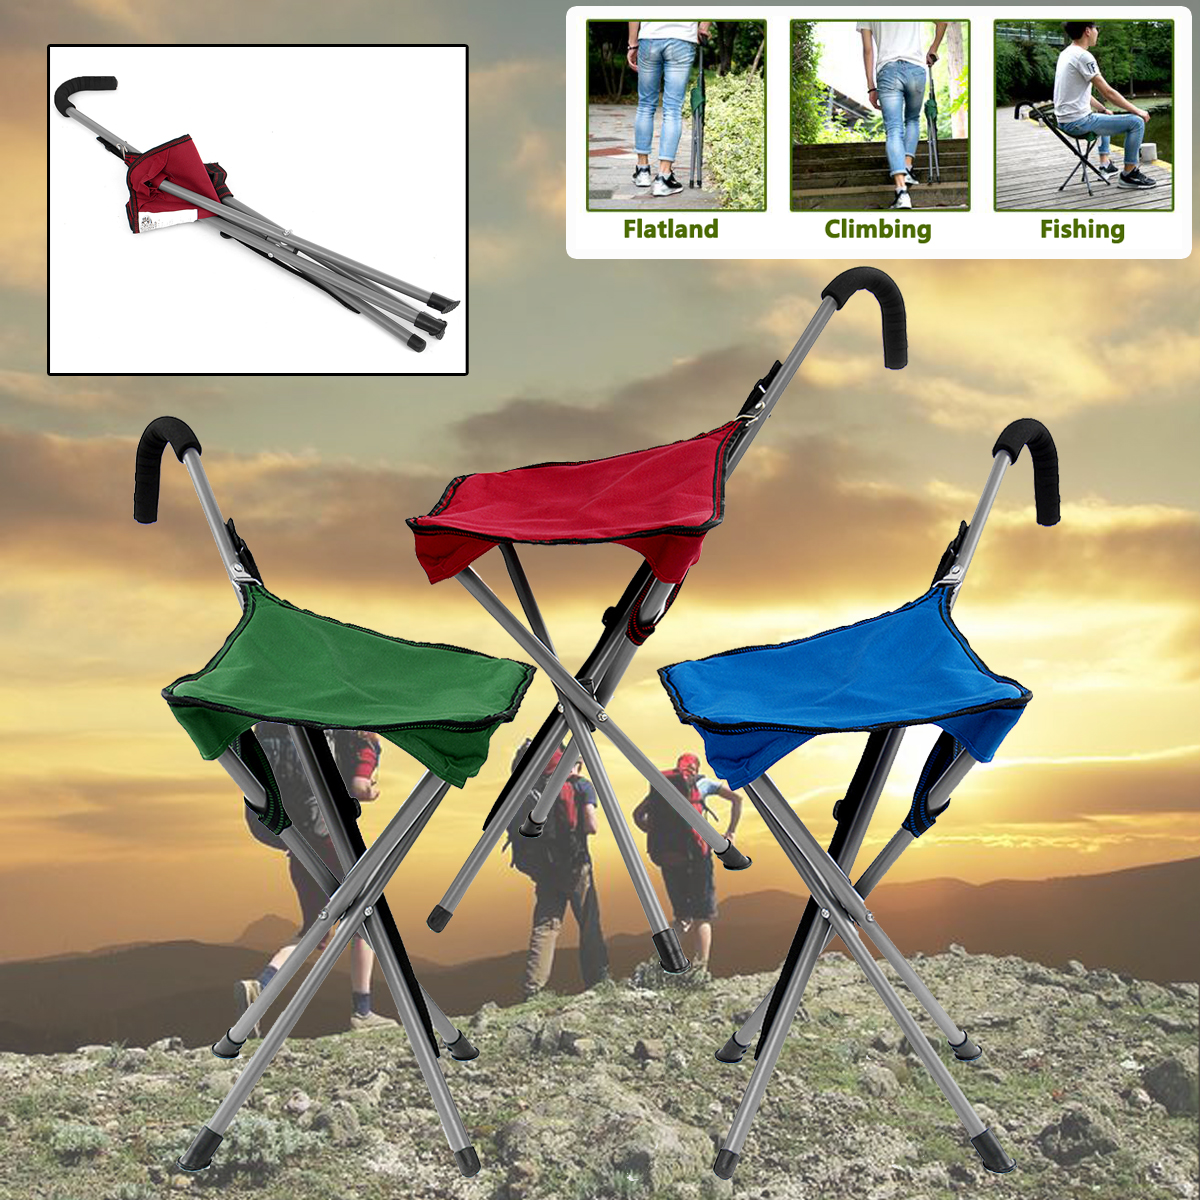 Folding fishing Chair Stool Walking Stick with Seat Portable Fishing Rest Stool Outdoor Camping BBQ Chair sufeile 1pc portable folding chair chair military mazar adult fishing chair outdoor train small bench stool low stool sy17